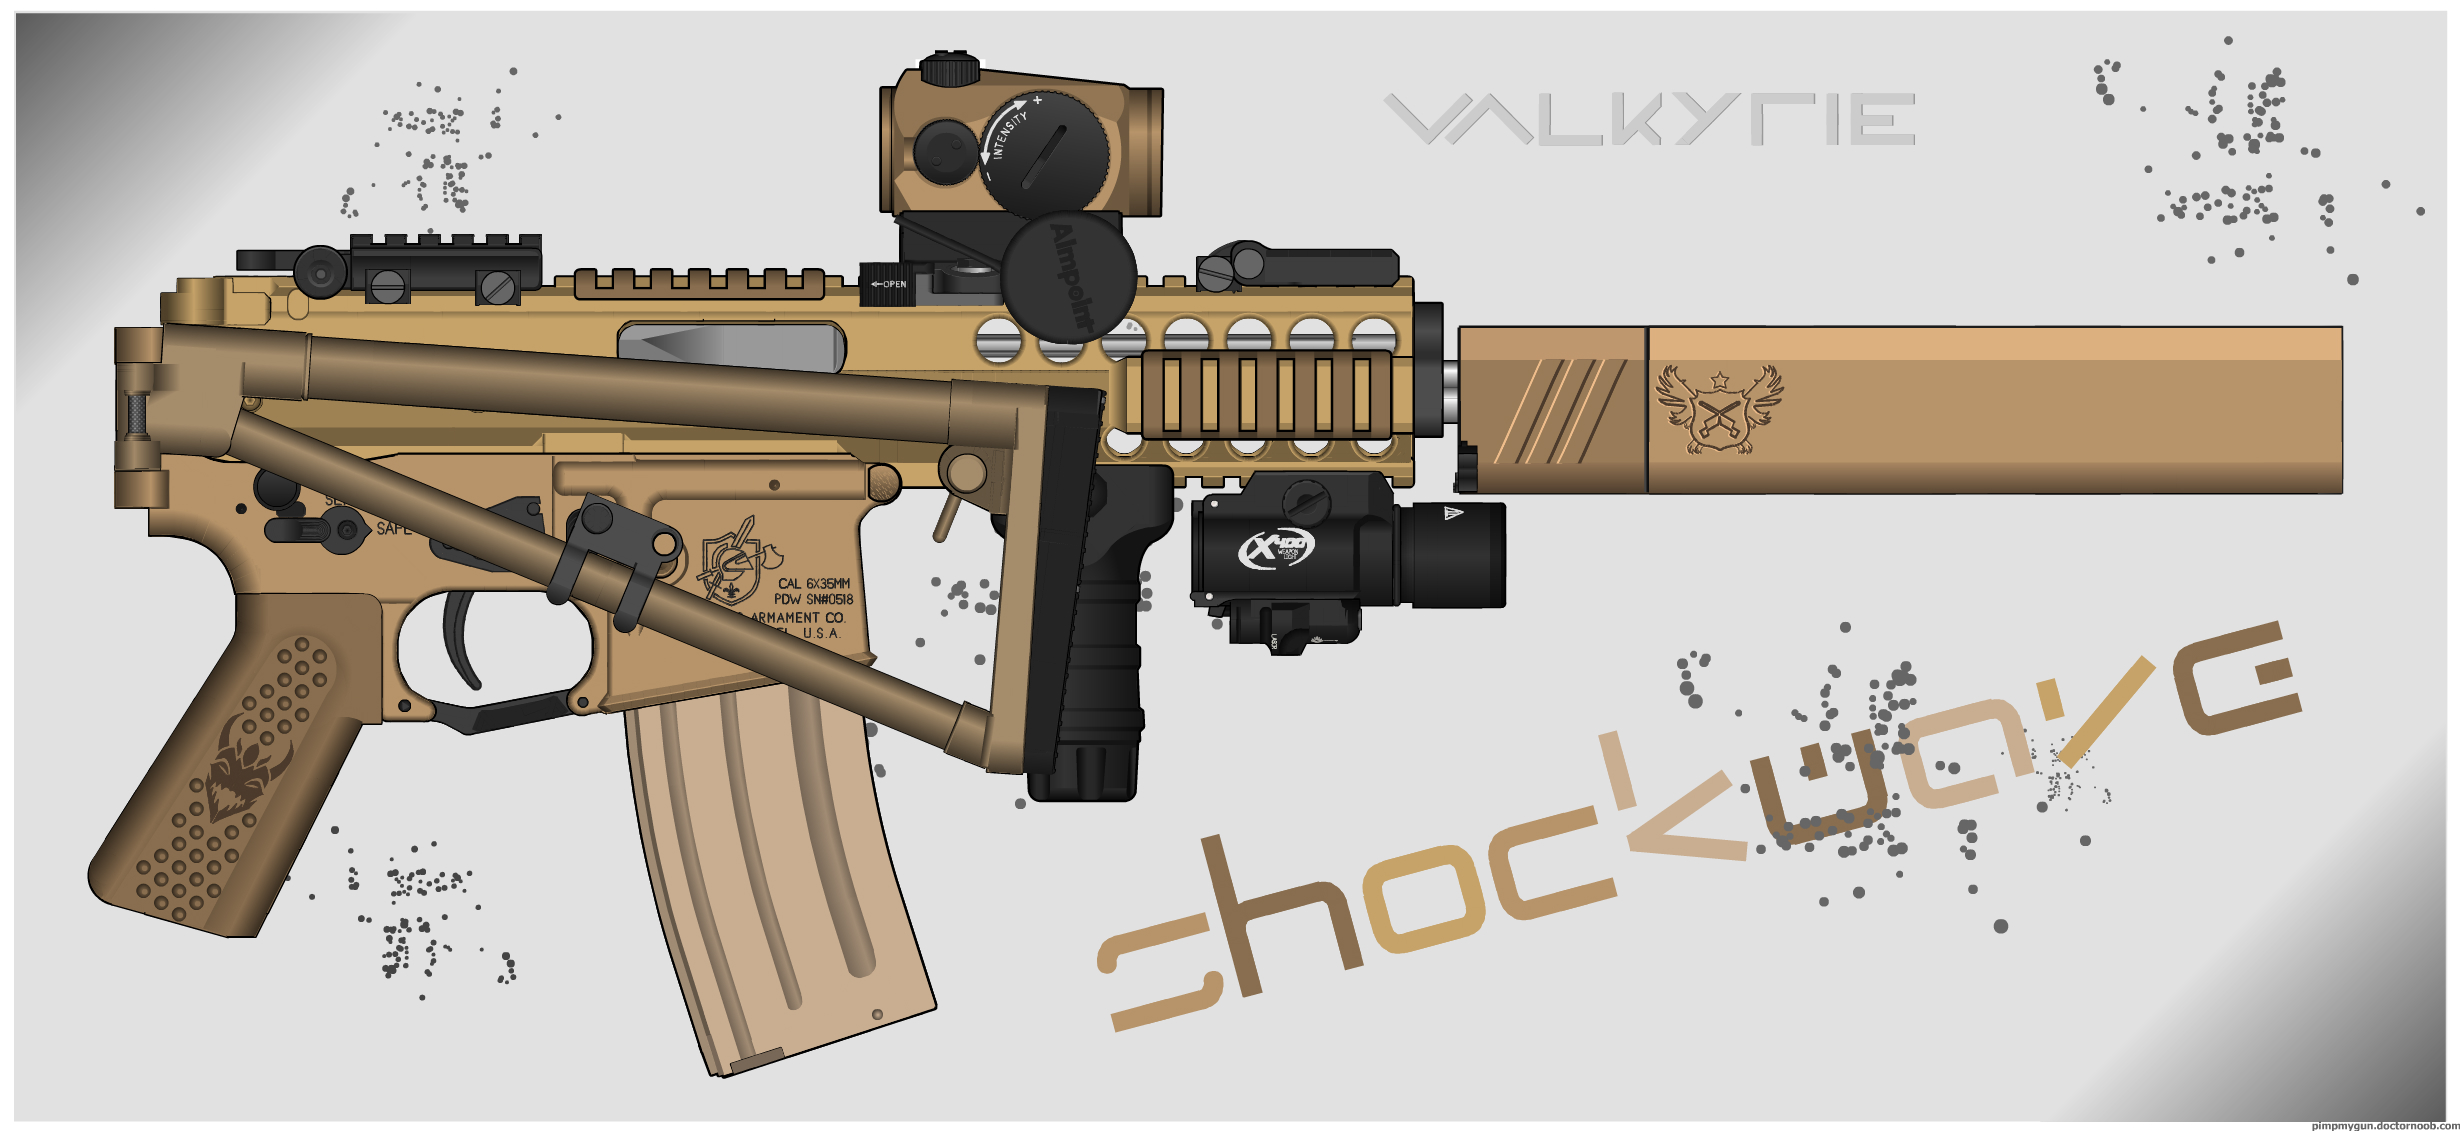 El_Mattia's KAC PDW by Shockwave9001